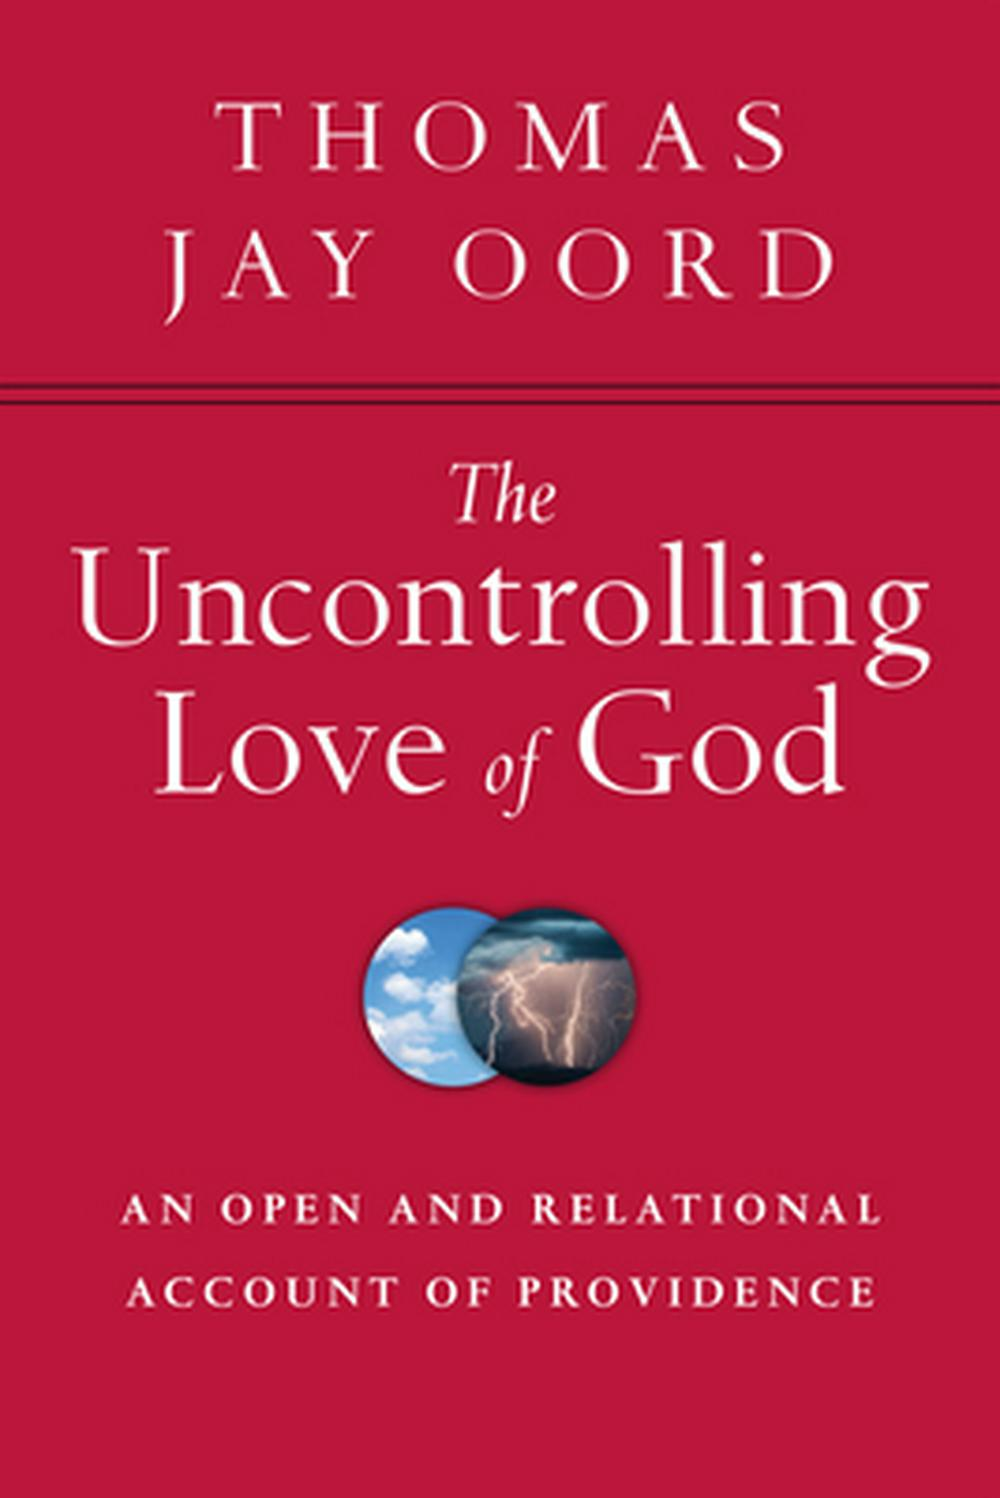 The Uncontrolling Love of GodAn Open and Relational Account of Providence